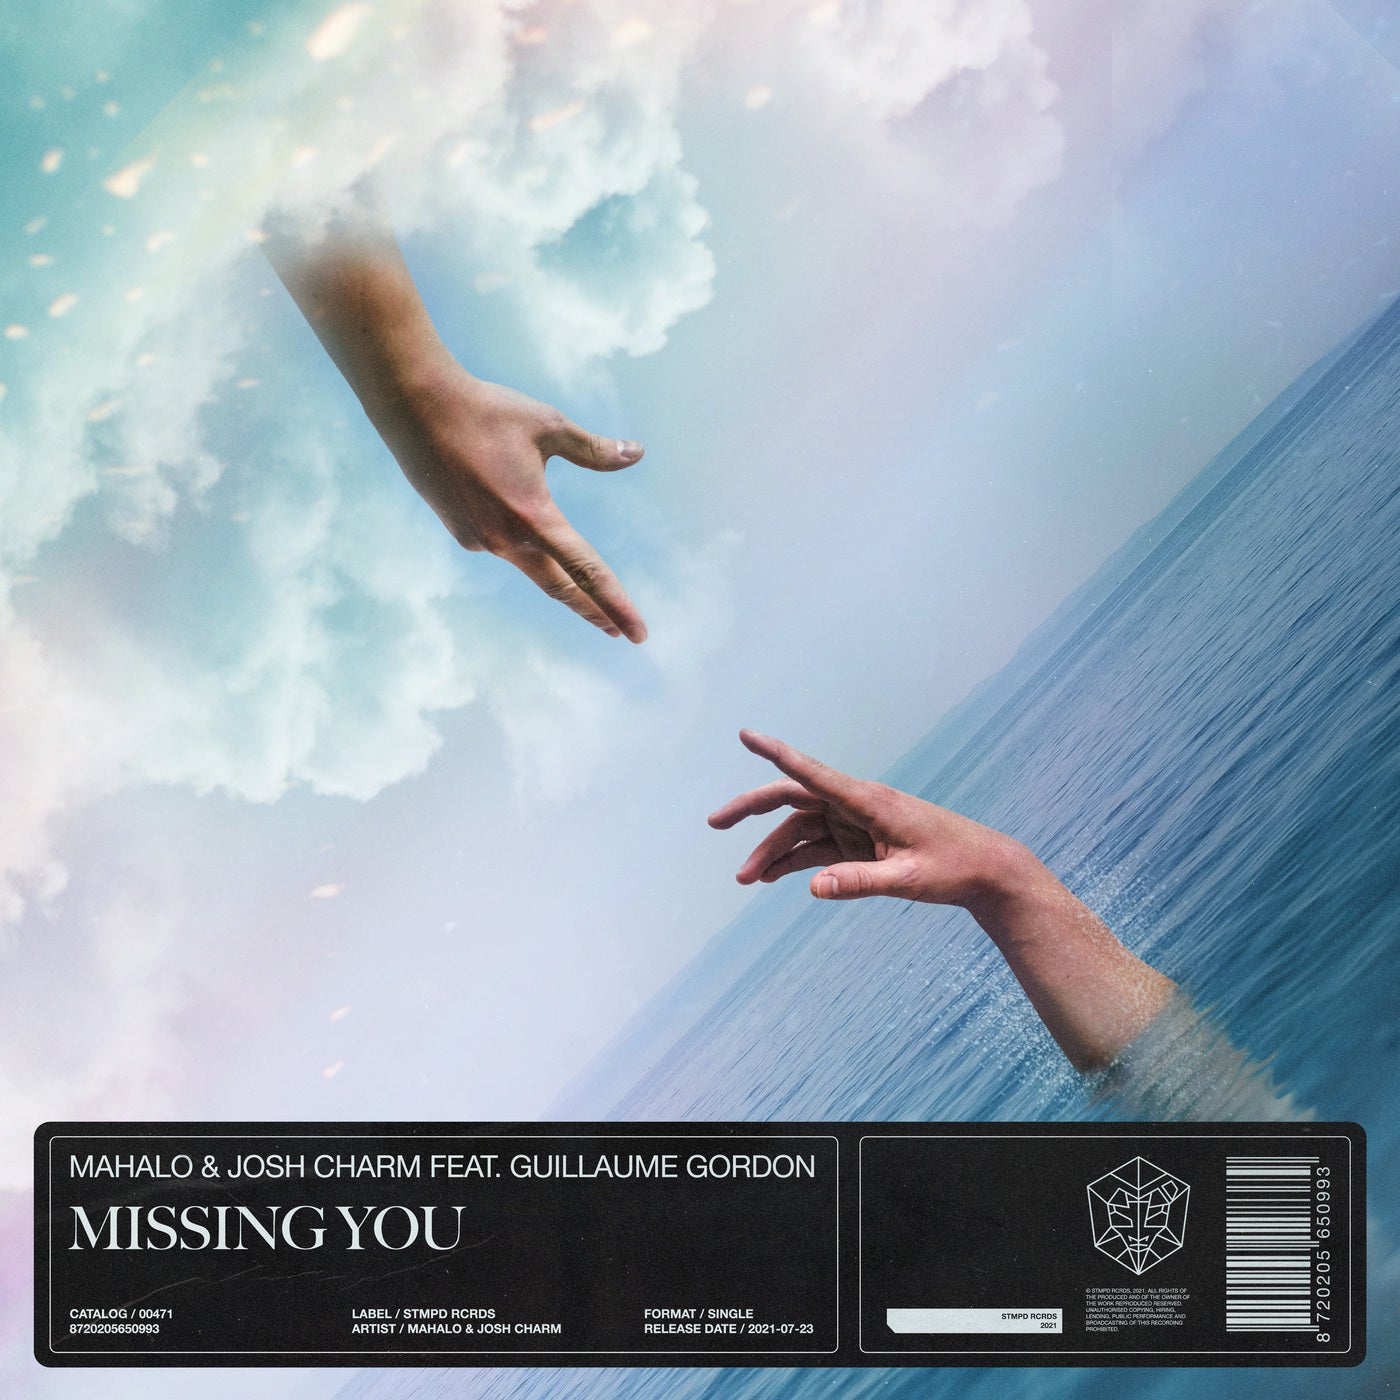 Missing You feat. Guillaume Gordon (Extended Mix)